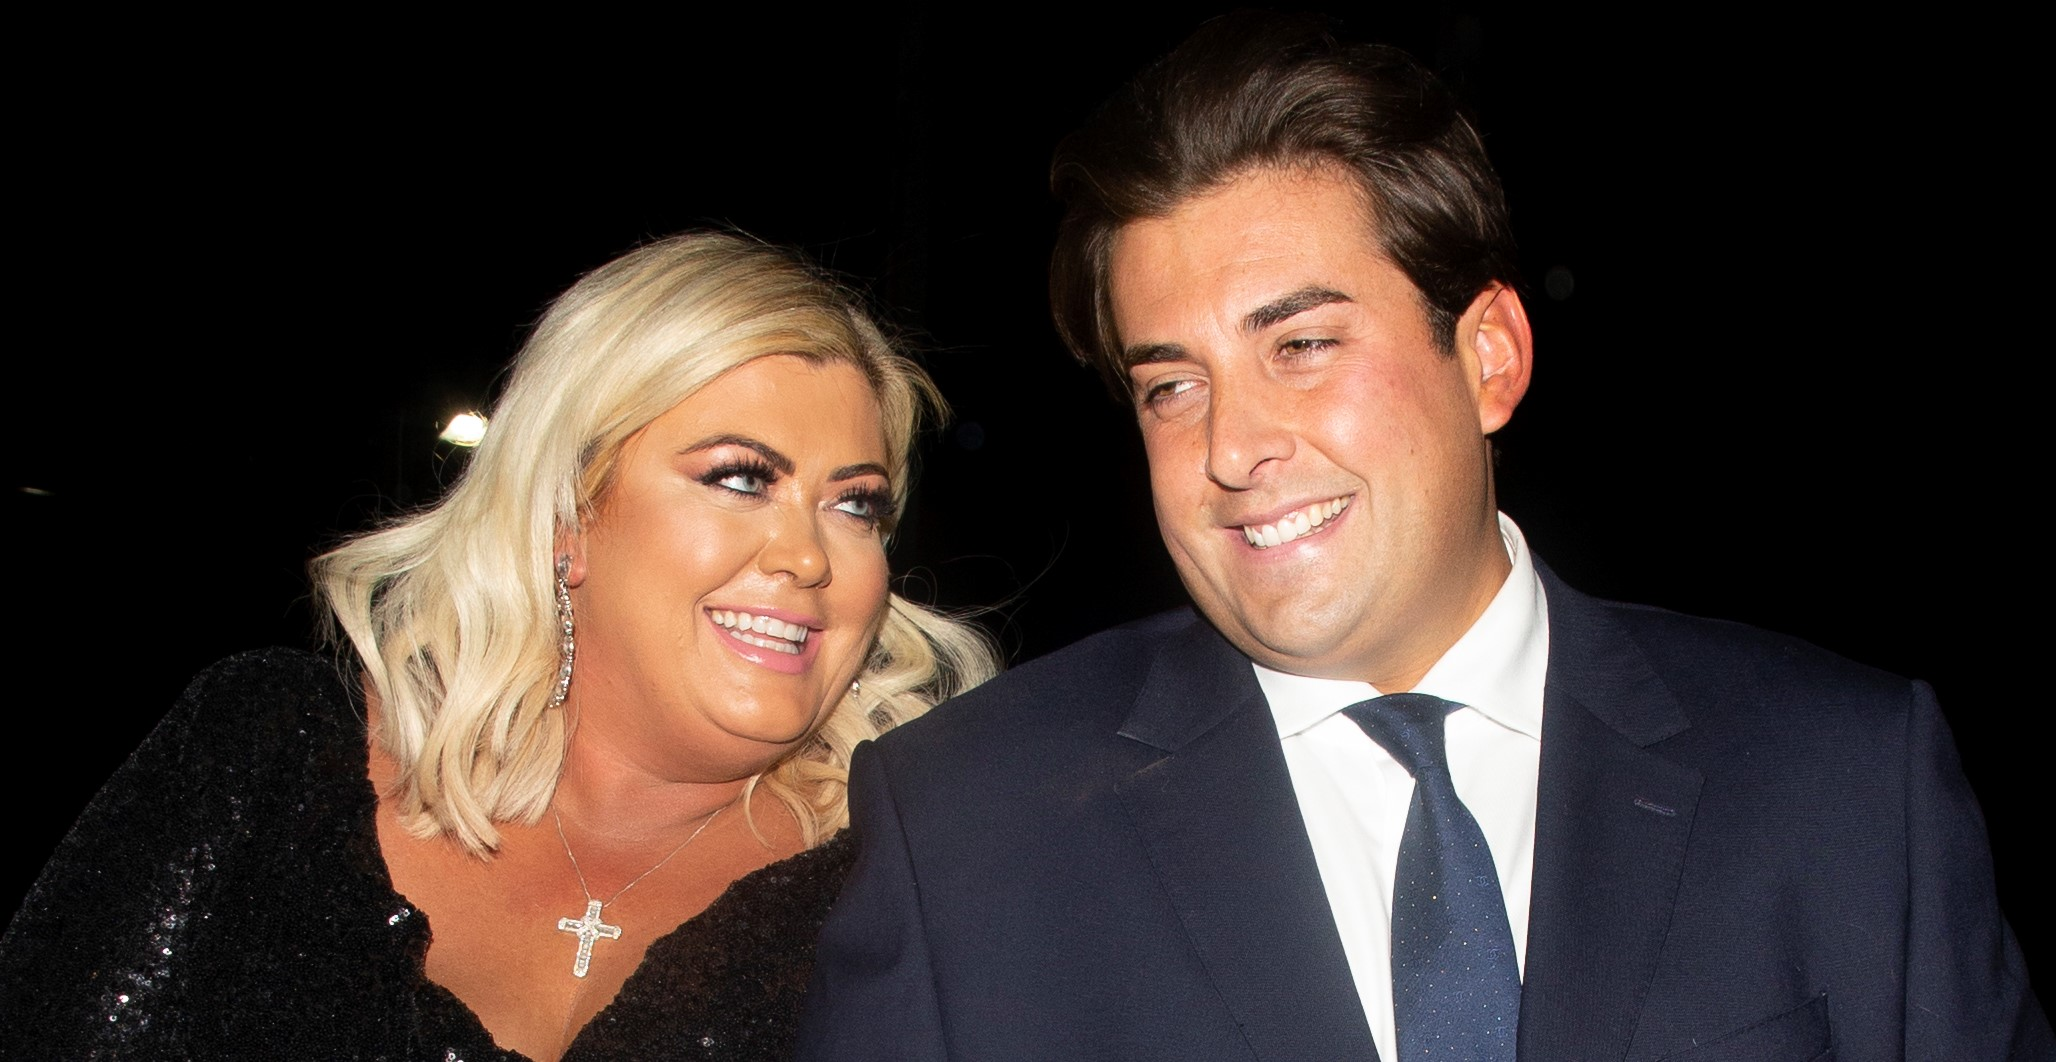 Gemma Collins and James Argent accused of 'promoting animal cruelty' with latest holiday photo